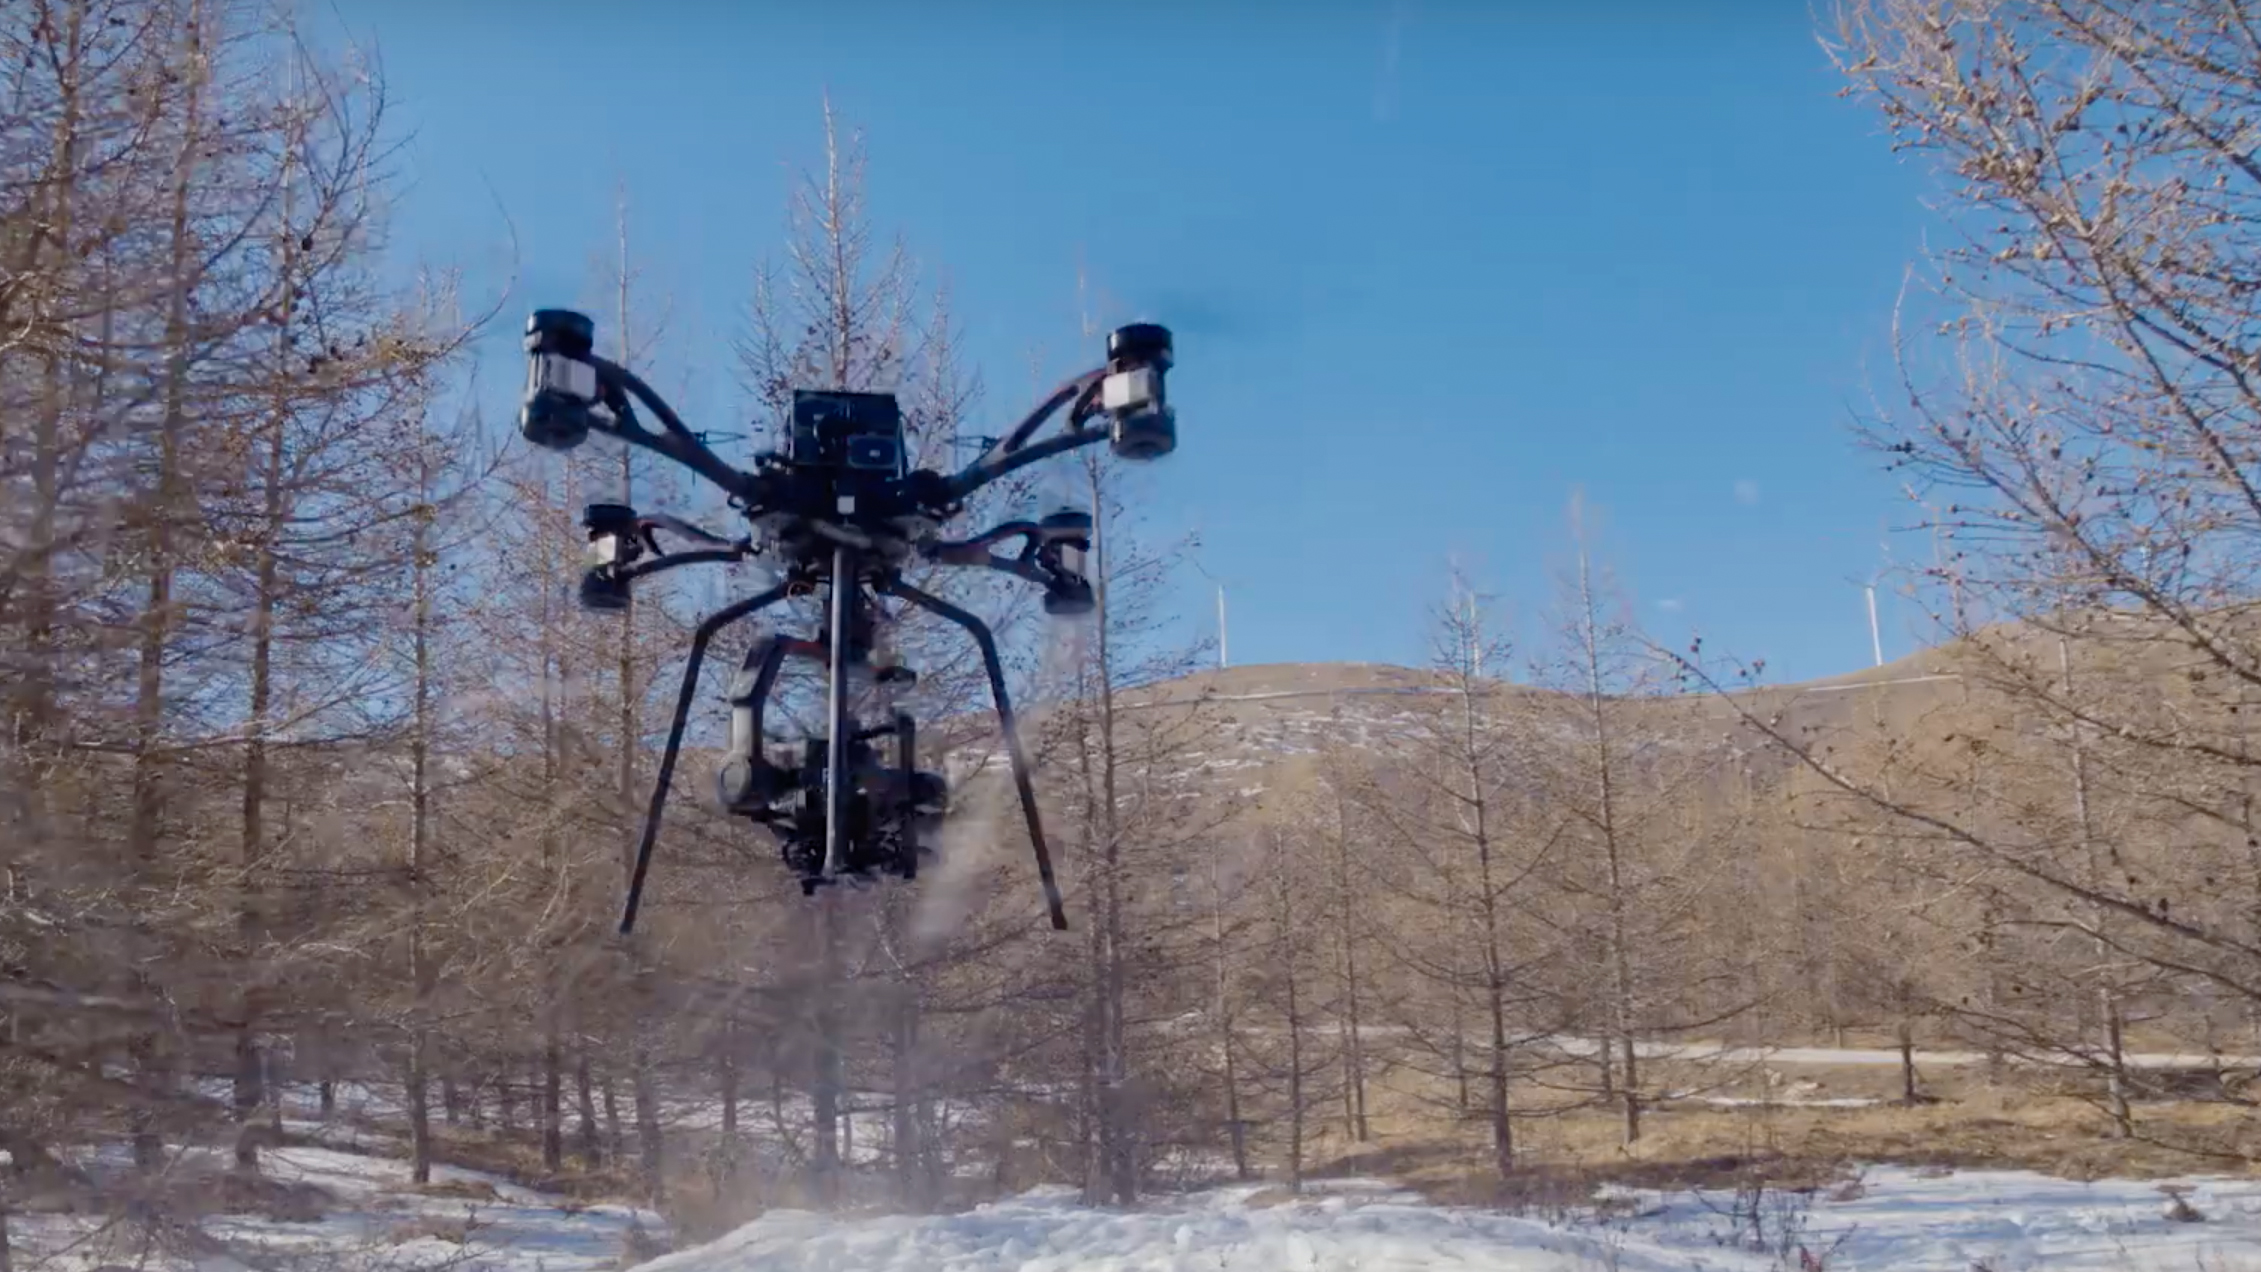 DJI unveils STORM cinematography drone, but you can't buy it